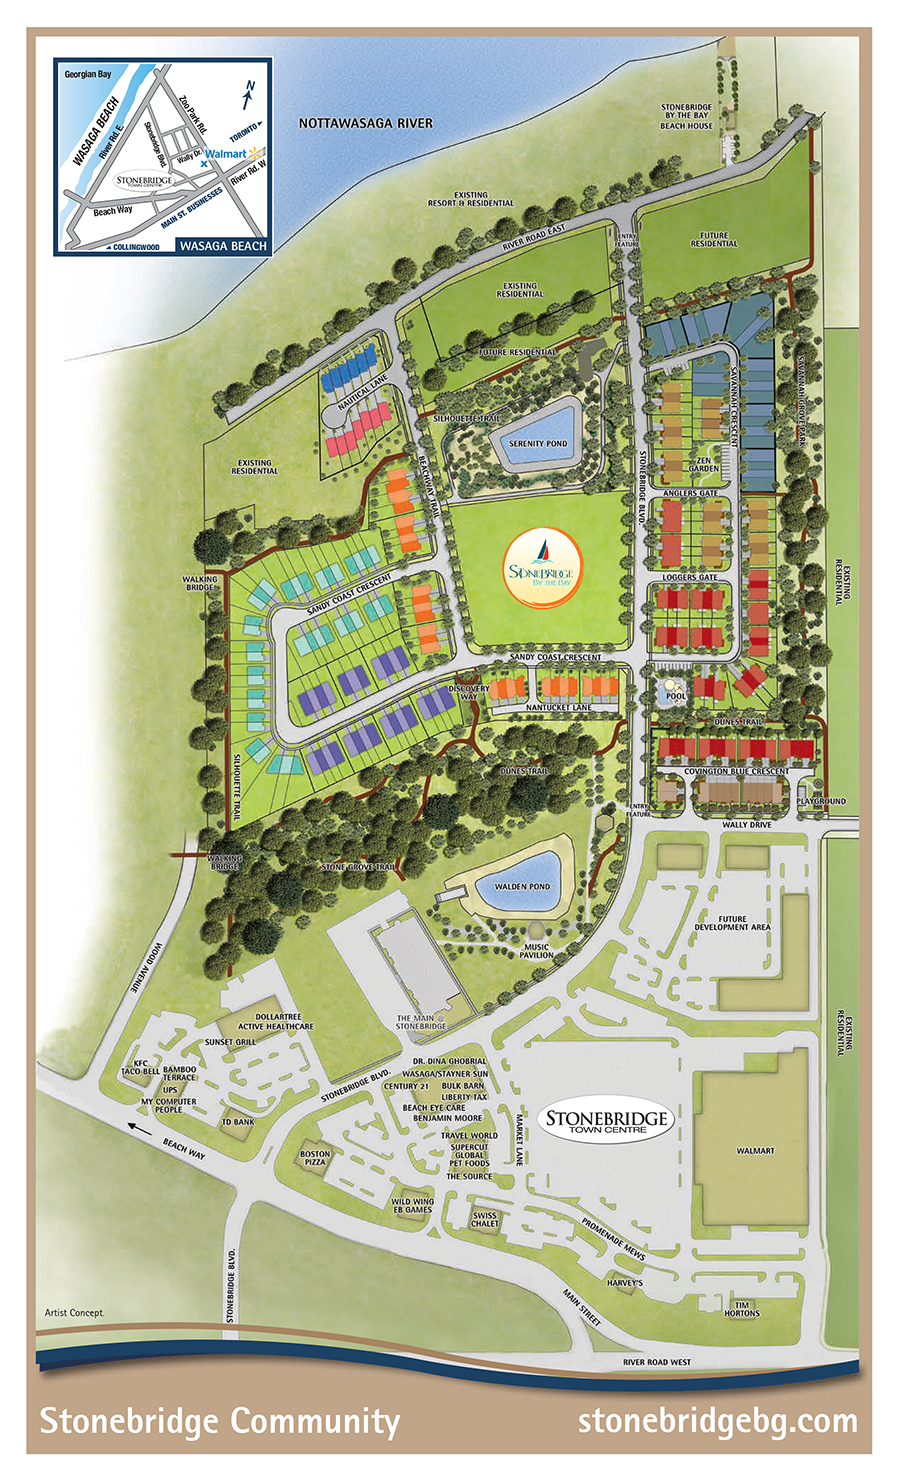 Stonebridge Site Plan